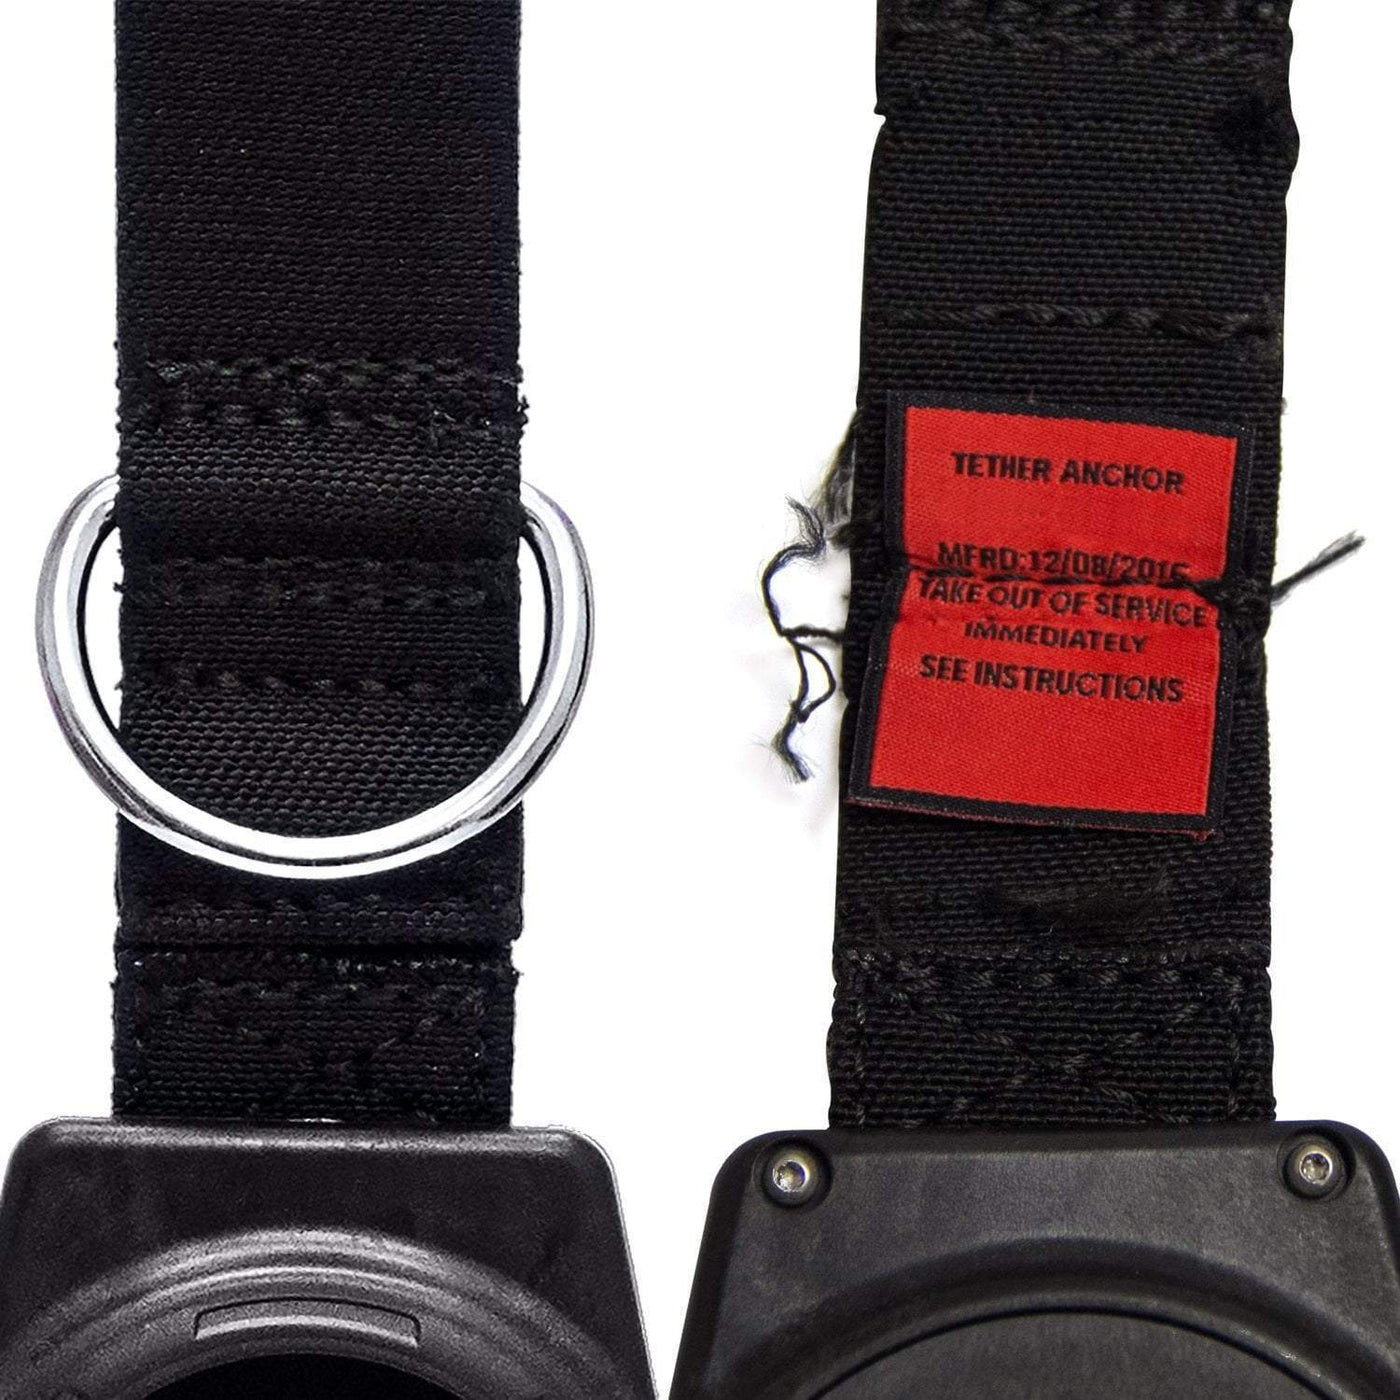 5 lb  Retractable Tool Lanyard for Dropped Object Prevention with Carabiner  Attachment